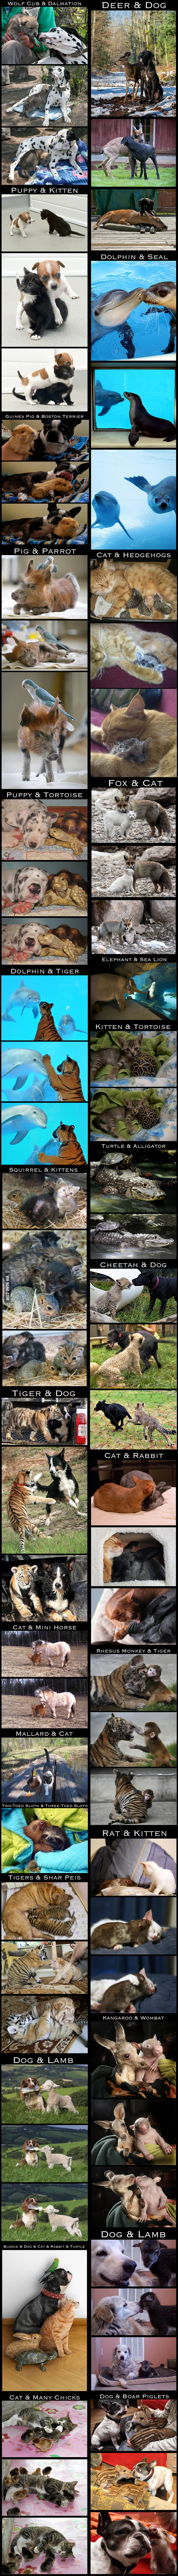 These are some true friendships